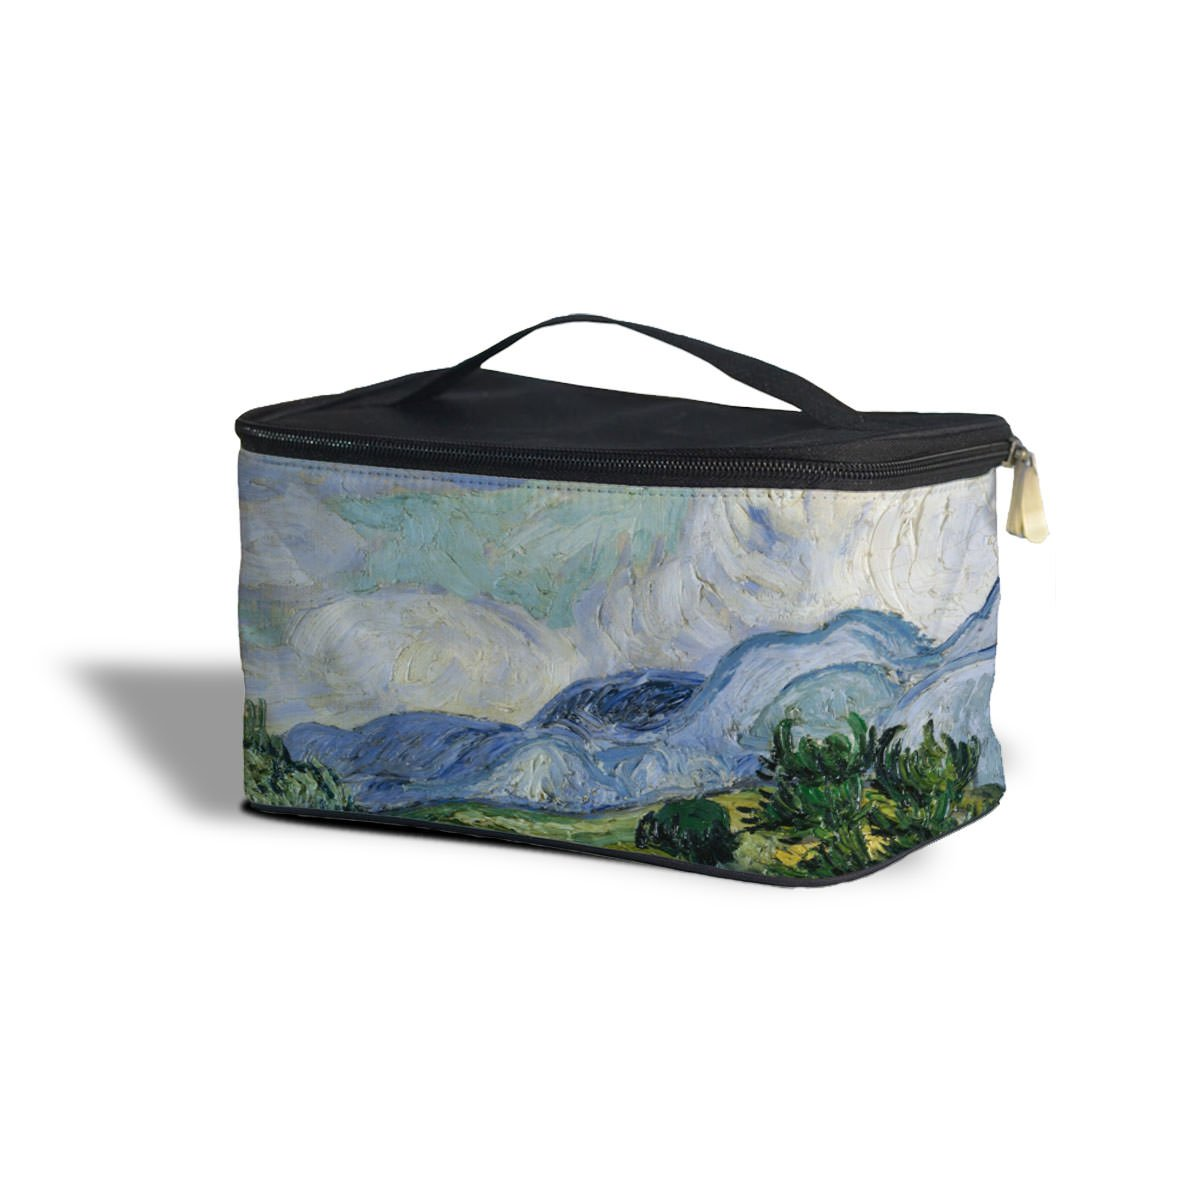 Queen of Cases Vincent Van Gogh Fine Art Painting Cosmetics Storage Case - One Size Cosmetics Storage Case - Makeup Zipped Travel Bag